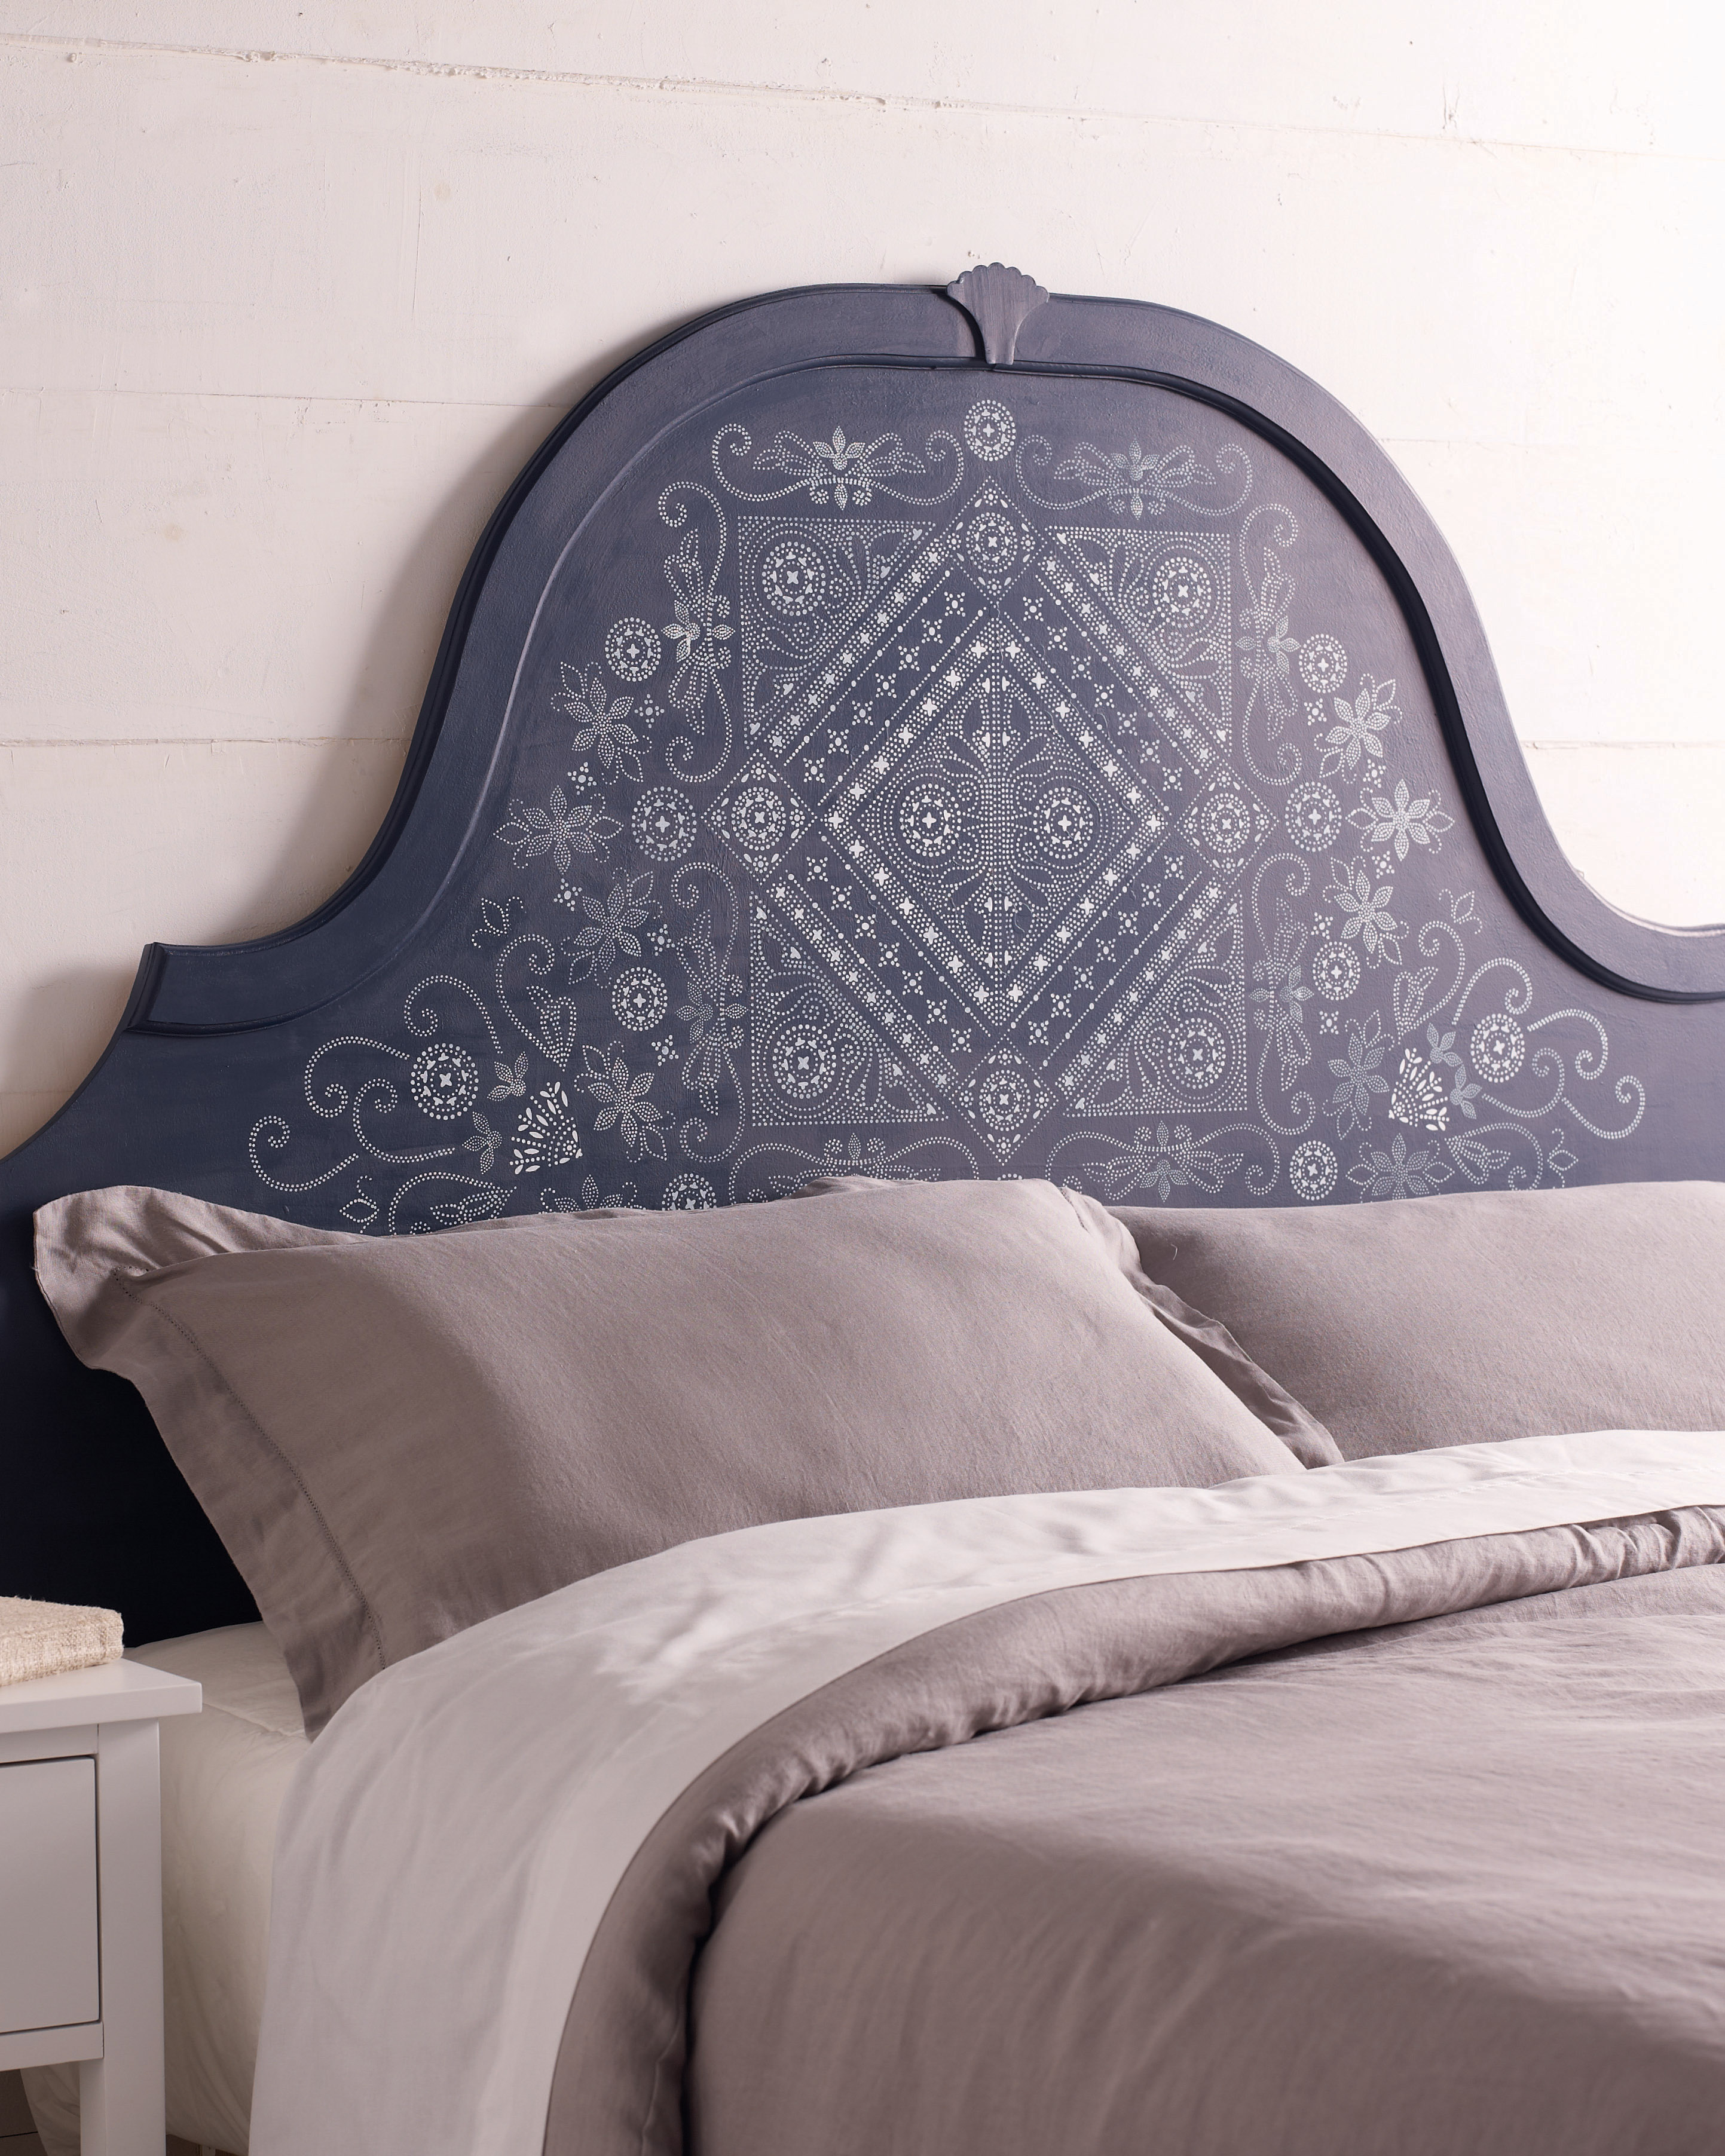 Batik-Pattern Stenciled Headboard